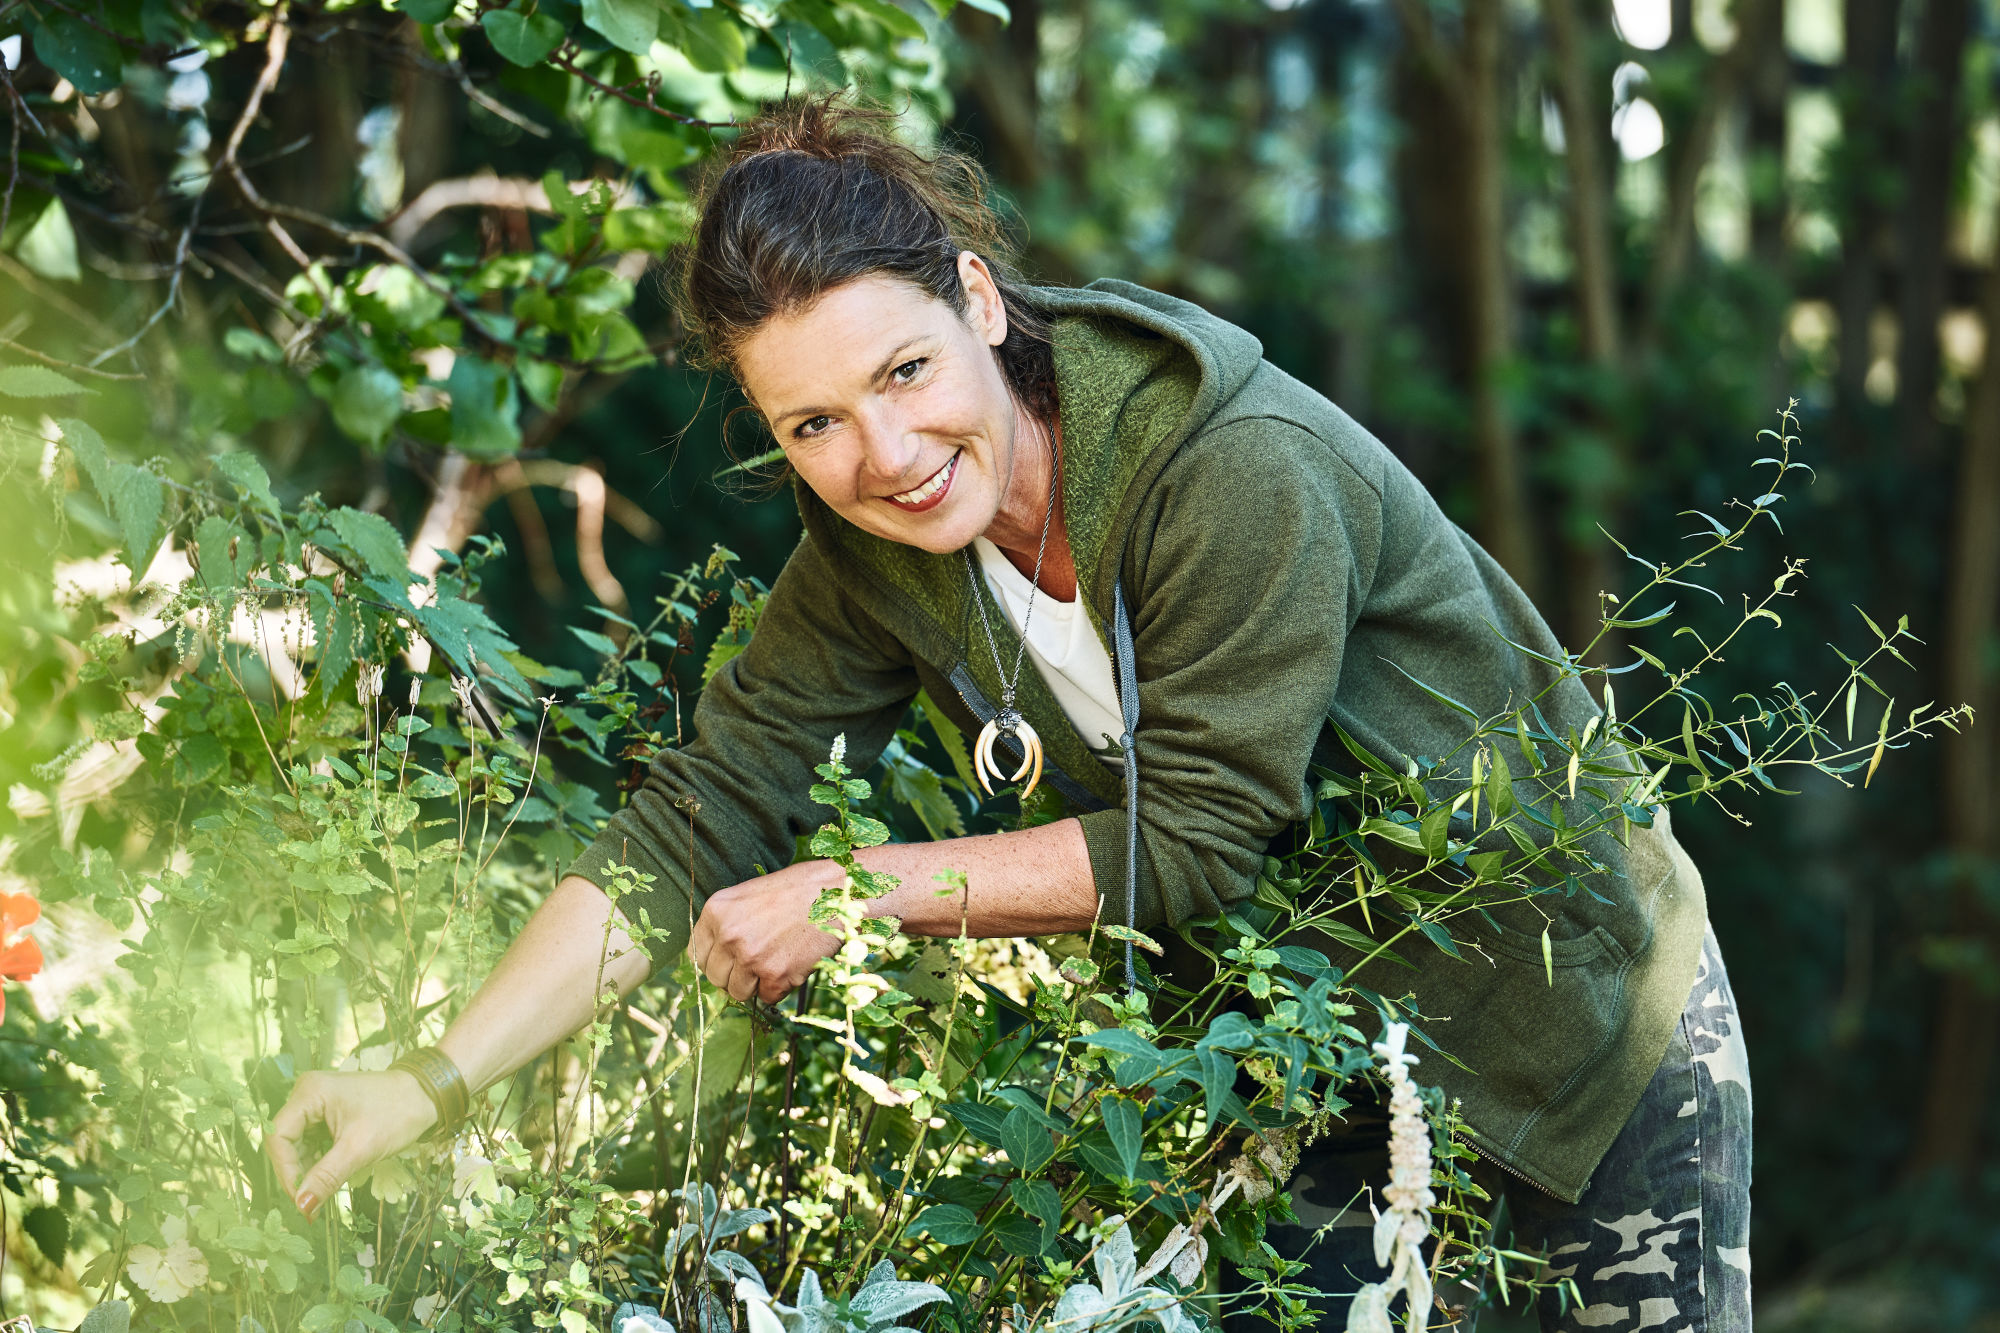 Hunting can heal Barbara Hoflache picking herbs